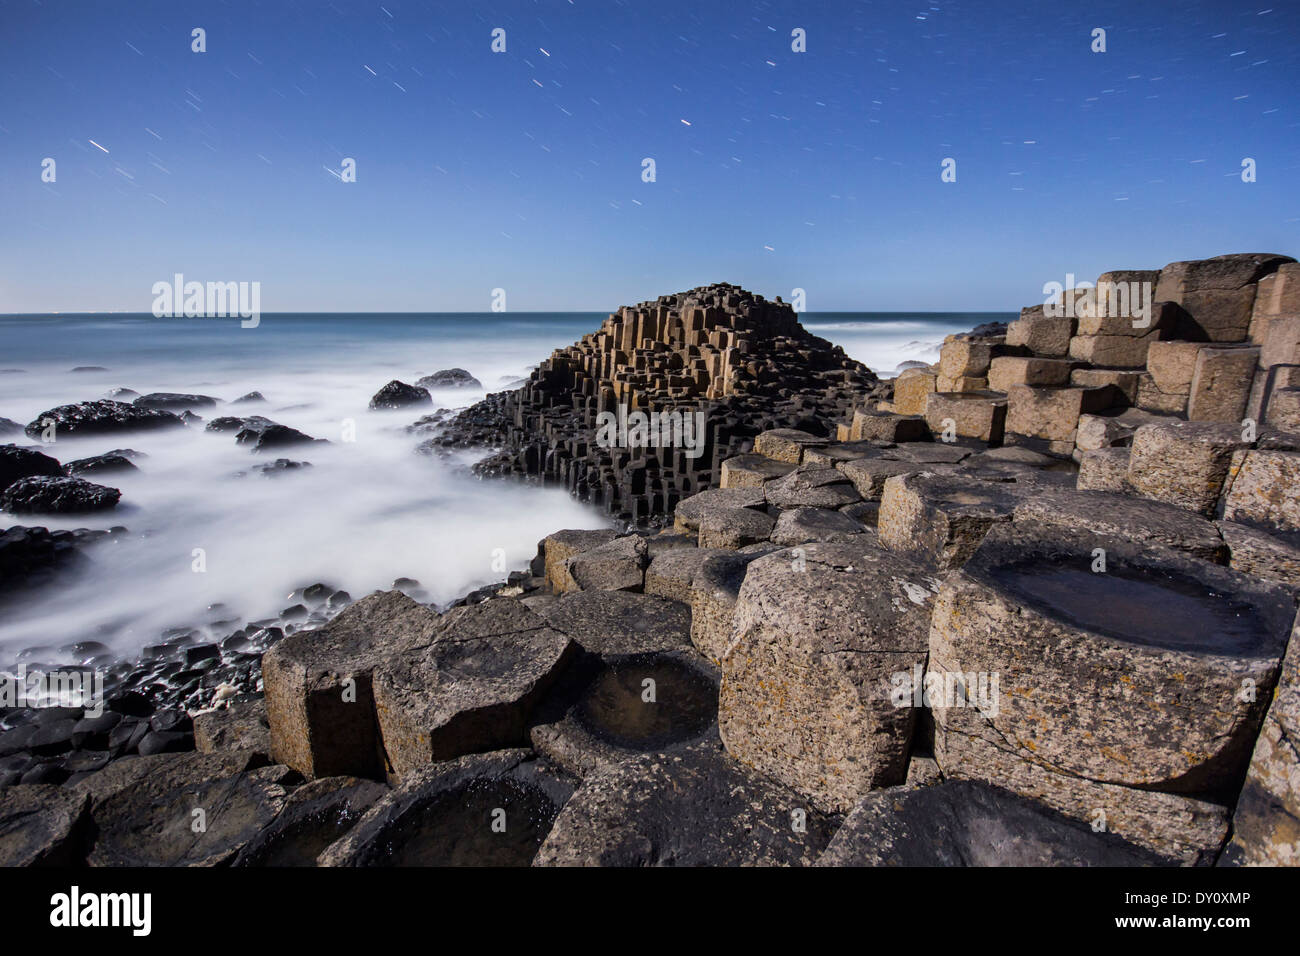 Starry night above the moonlit basalt columns at the Giant's Causeway UNESCO World Heritage site. - Stock Image